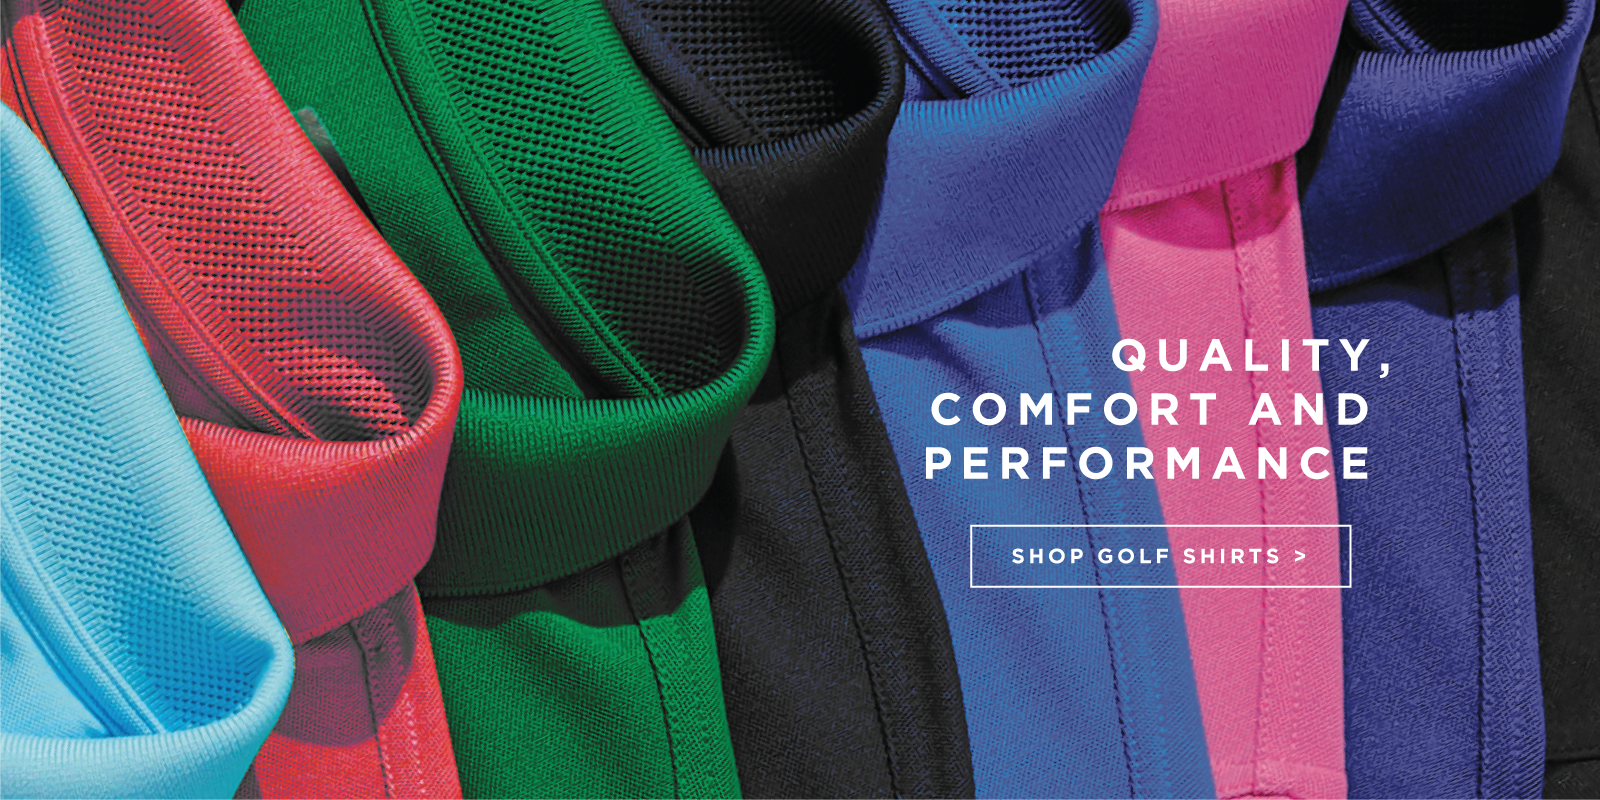 Quality, comfort and performance shop golf shirts